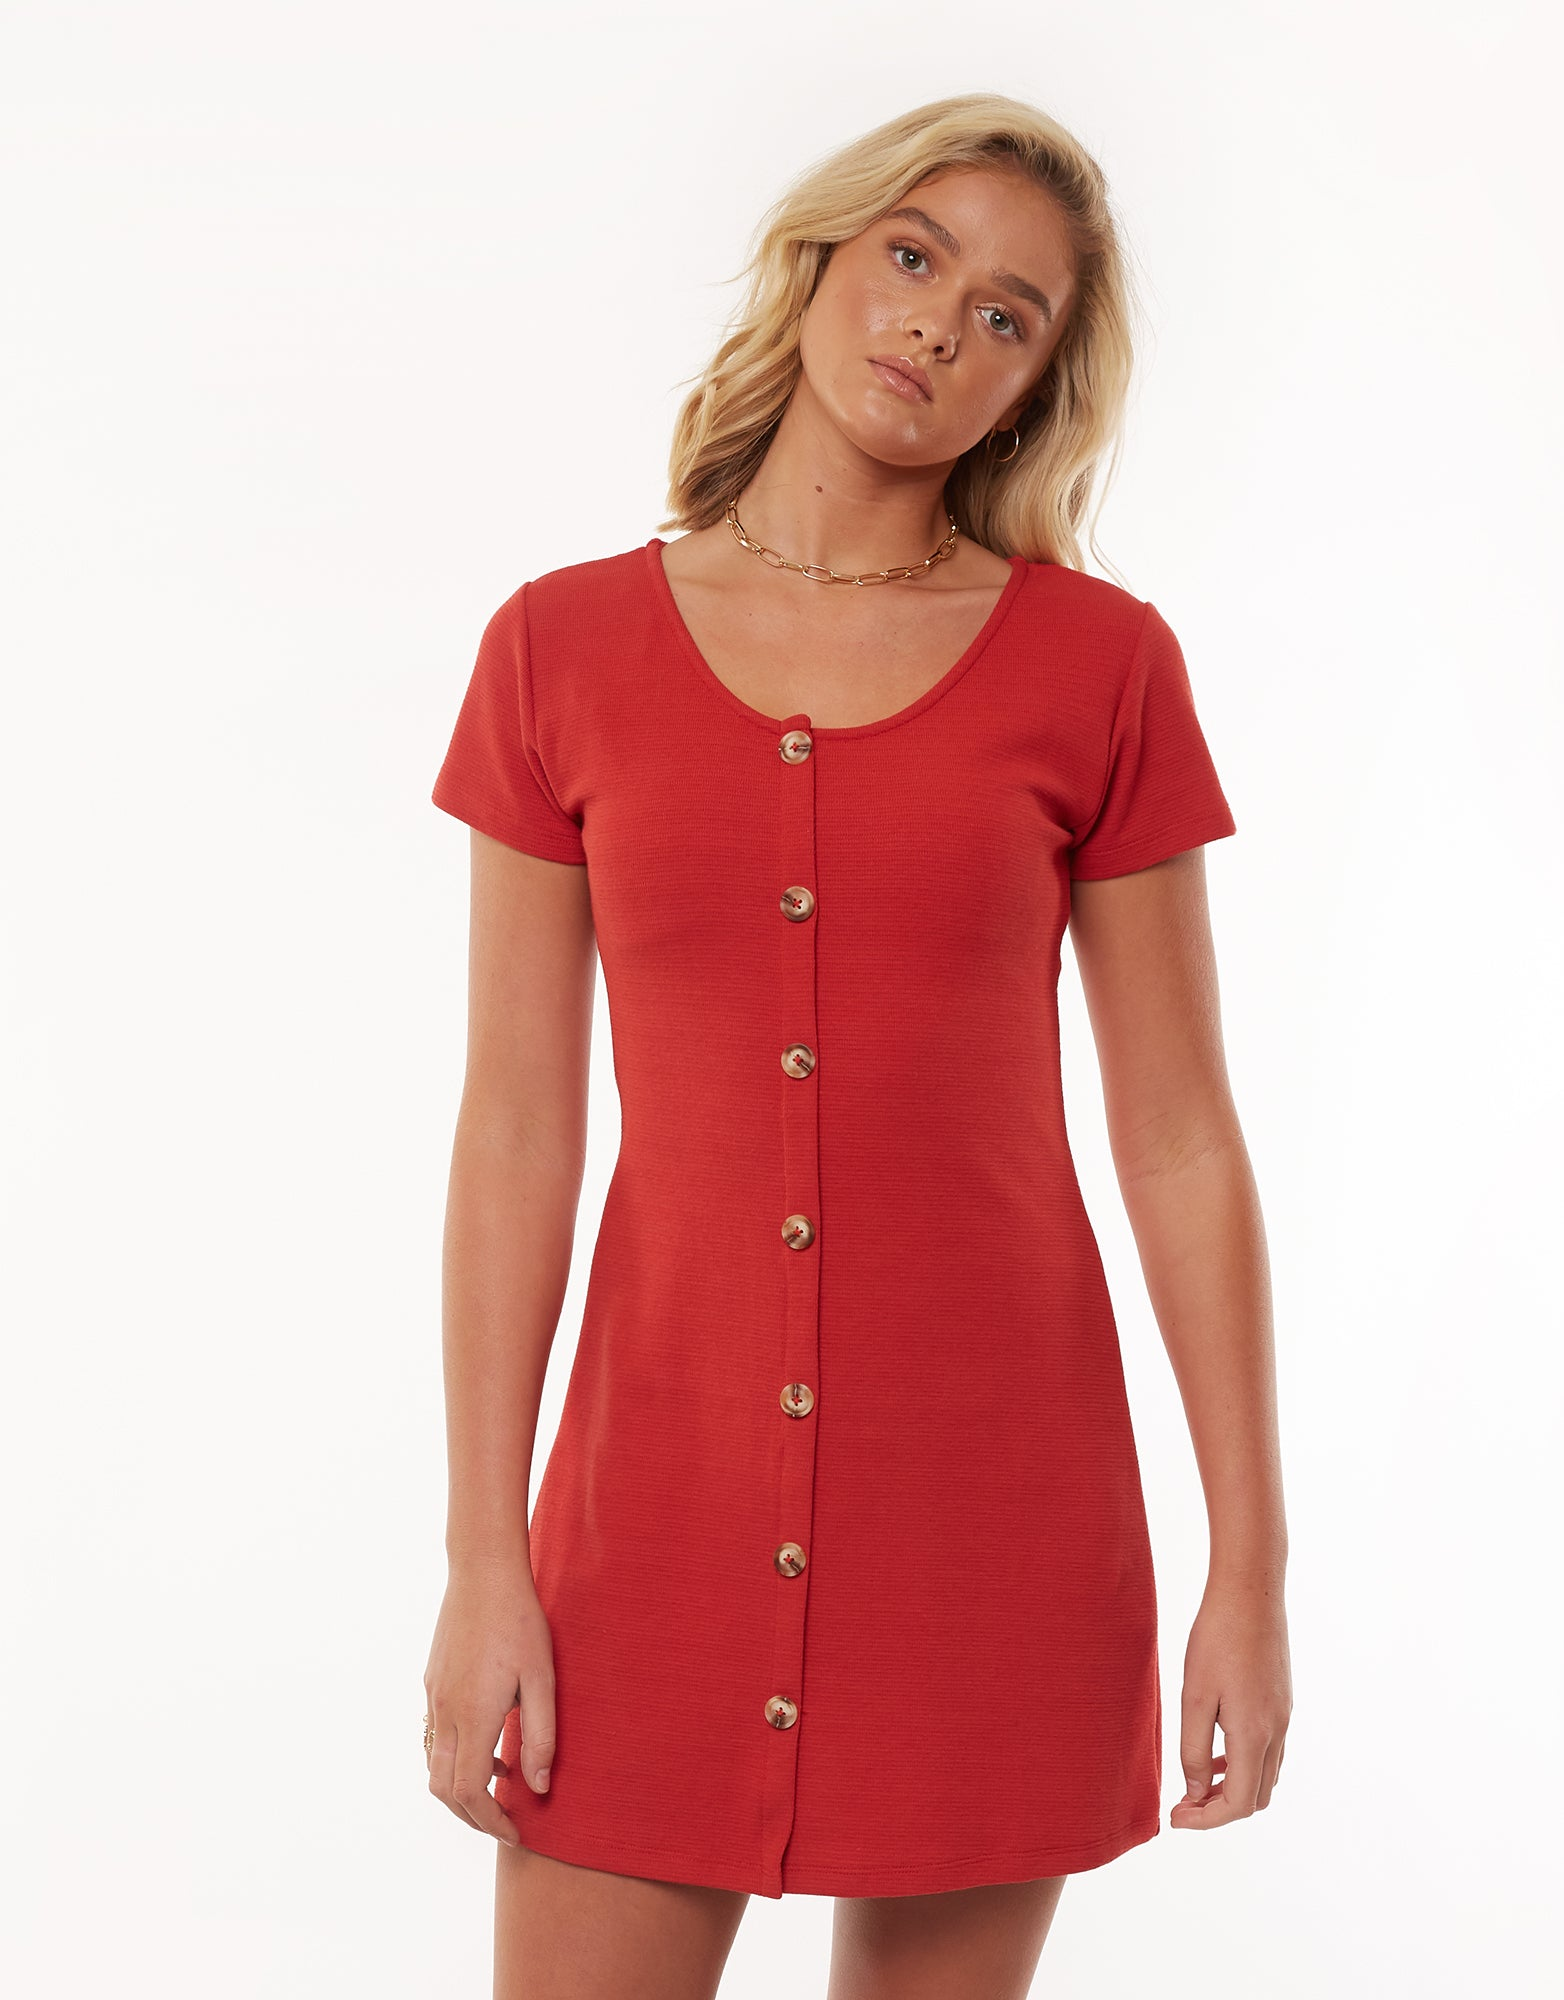 All About Eve Clothing OLD SCHOOL DRESS - RED